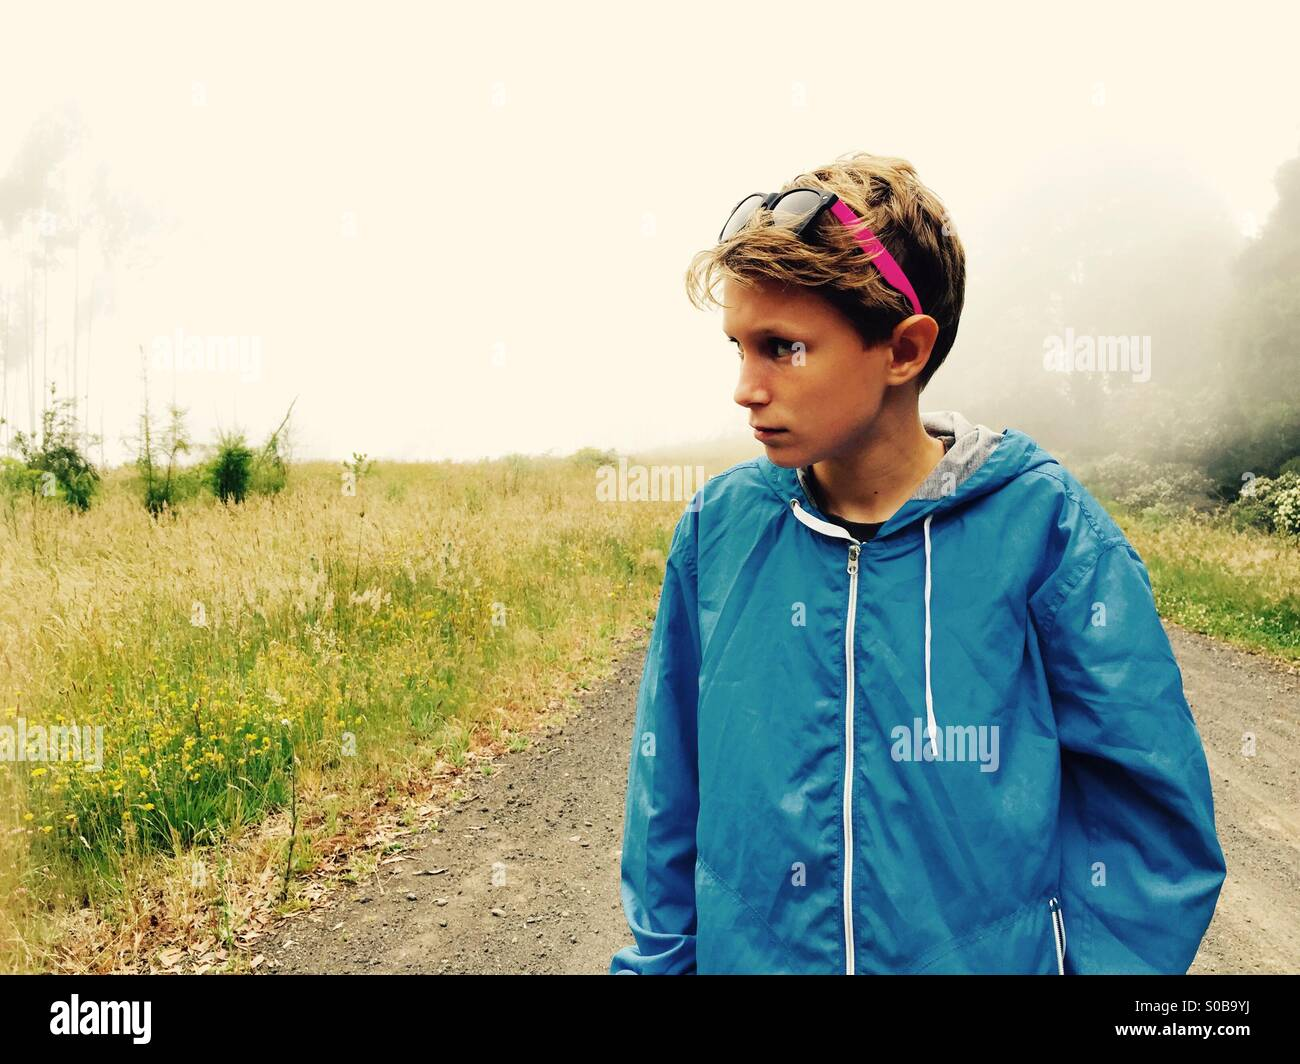 A boy walking on a country track on a foggy day - Stock Image